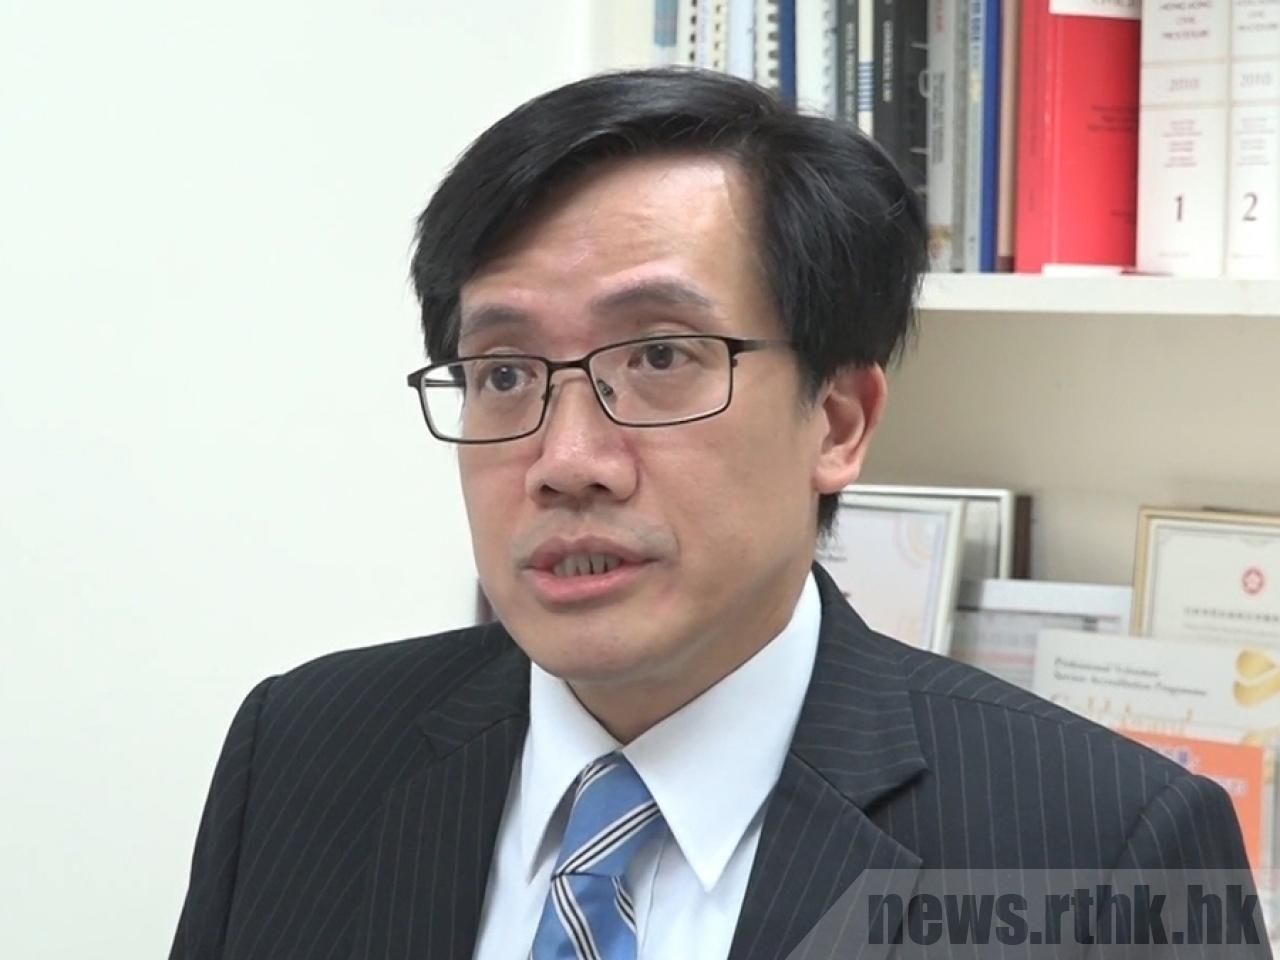 Alex Lam says the government should be more transparent about compensation given to people who experience complications from Covid-19 jabs. File photo: RTHK